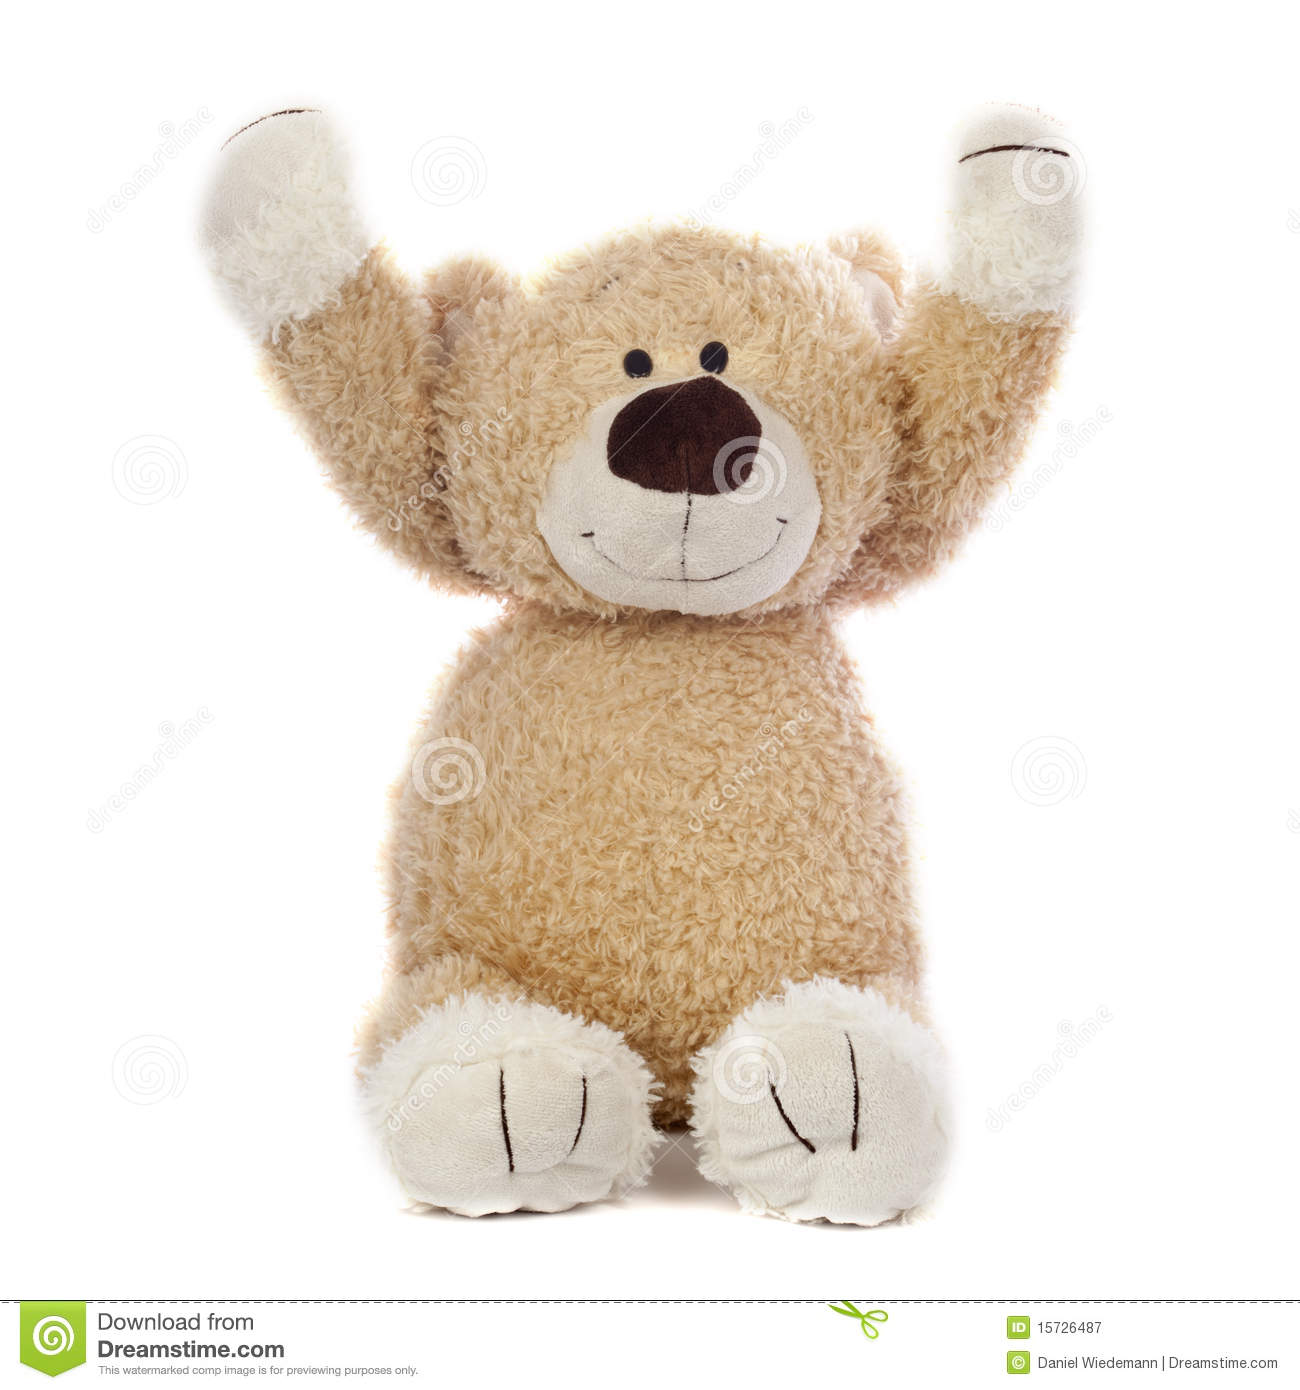 An adorable teddy bear that is happy. Isolated on a white background.